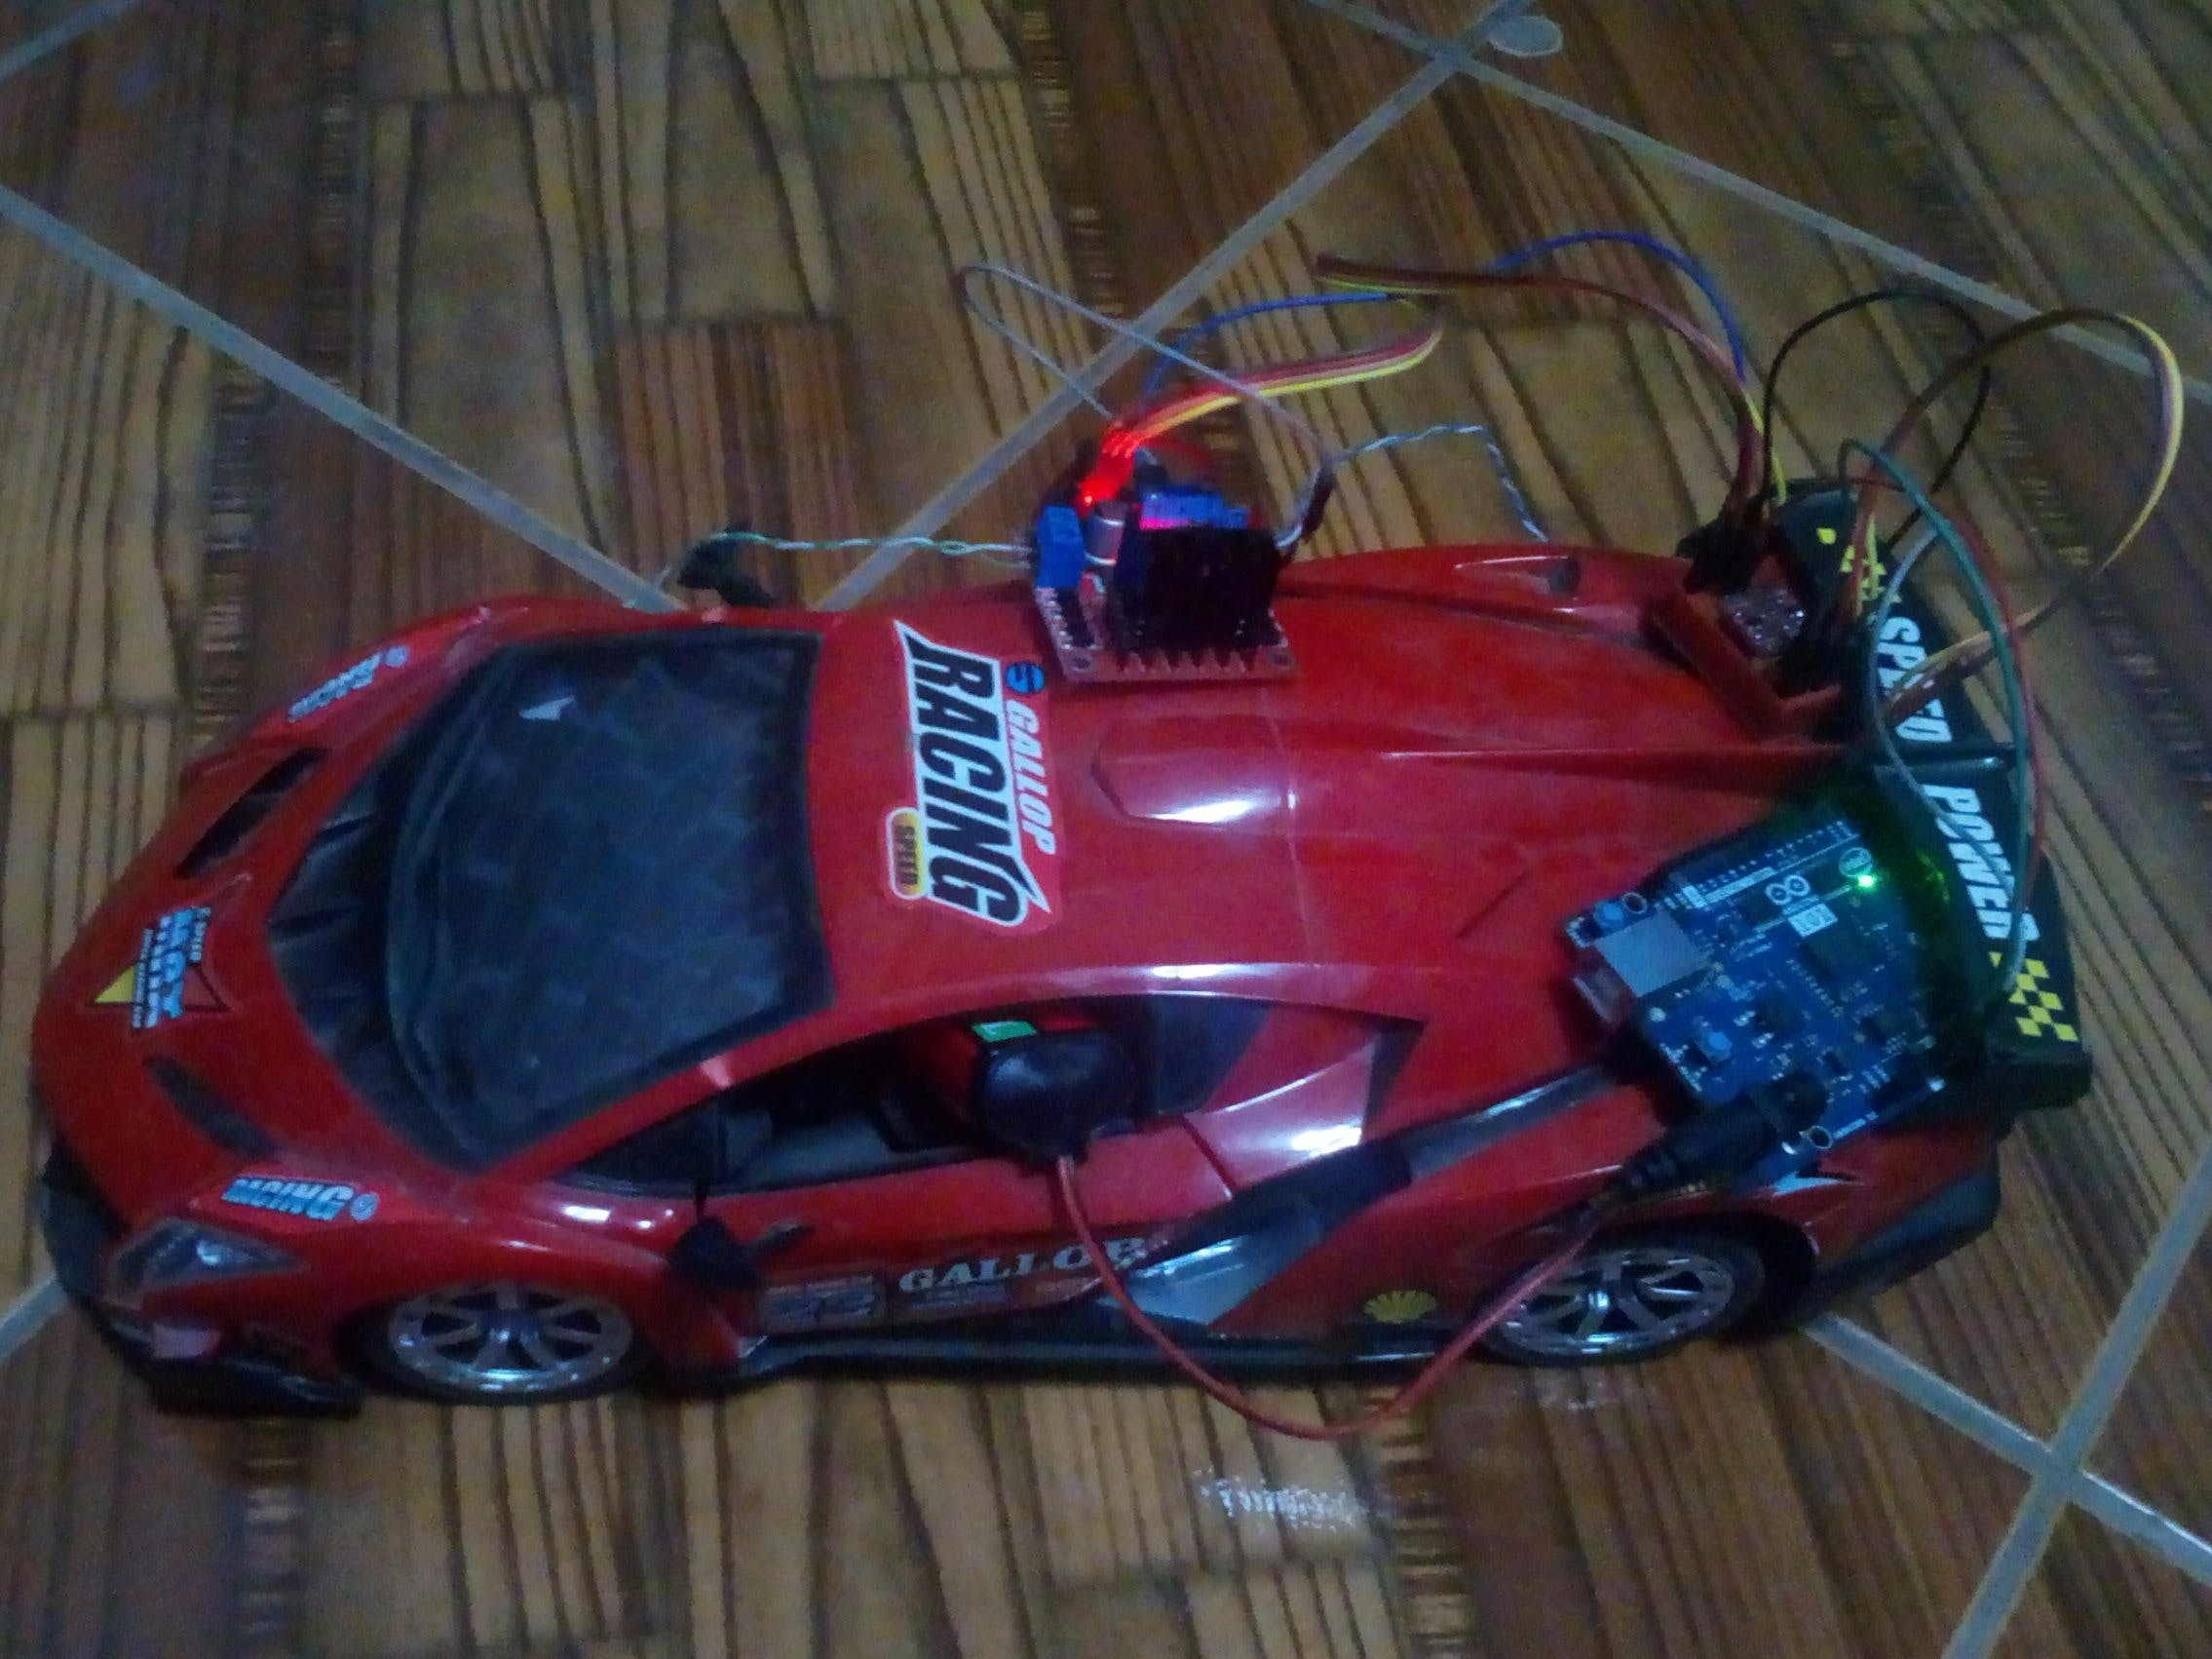 RC Car to BT Car Controlled with Blynk